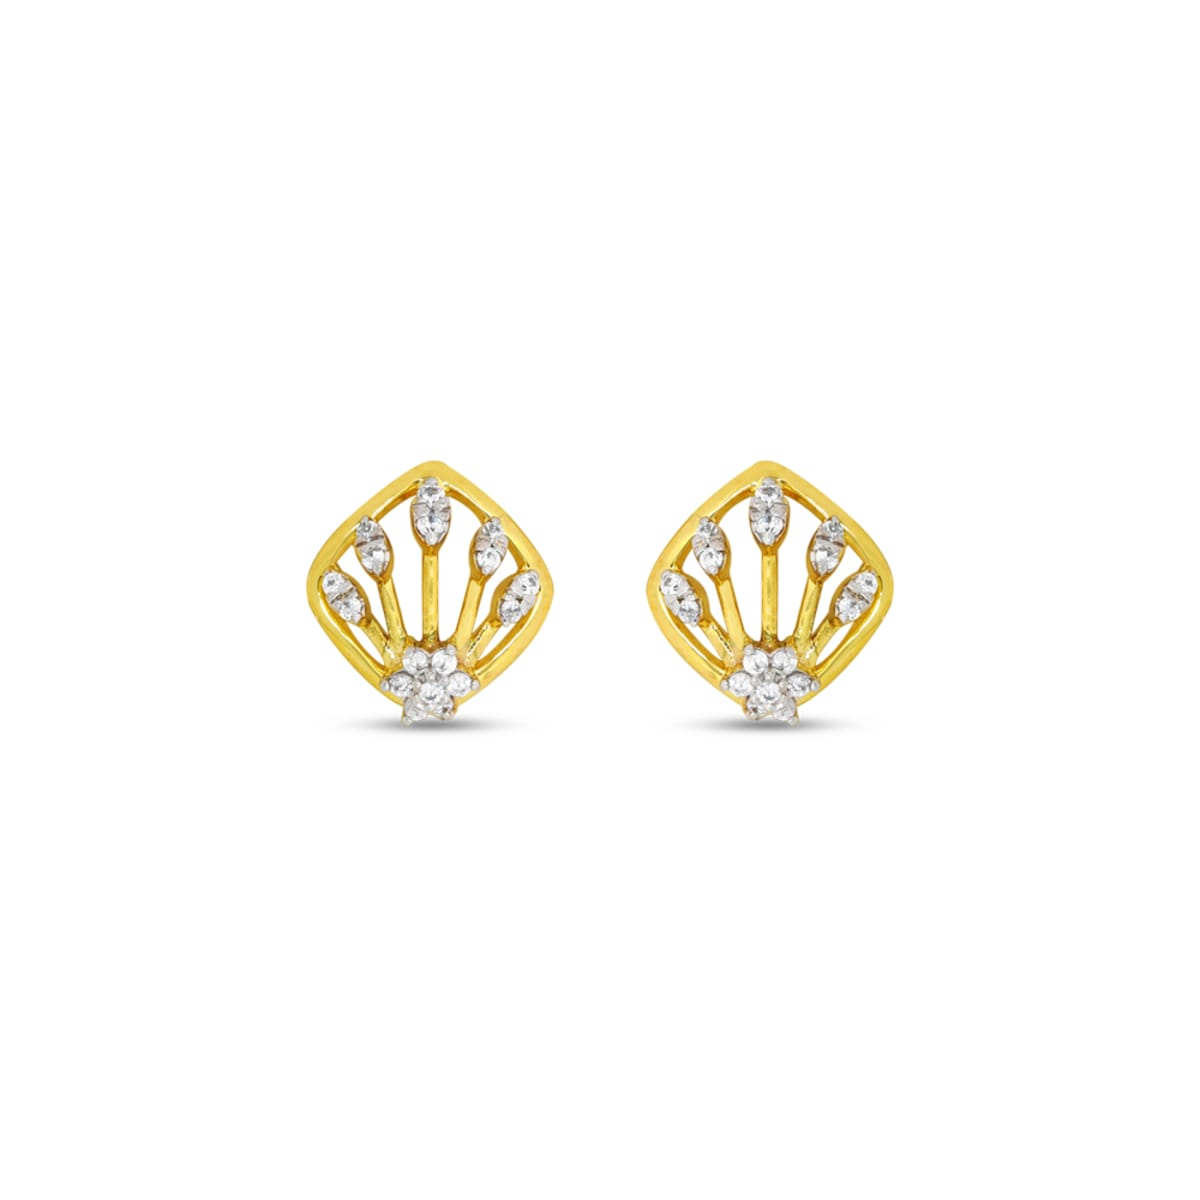 Real Diamond Stud Earring 17